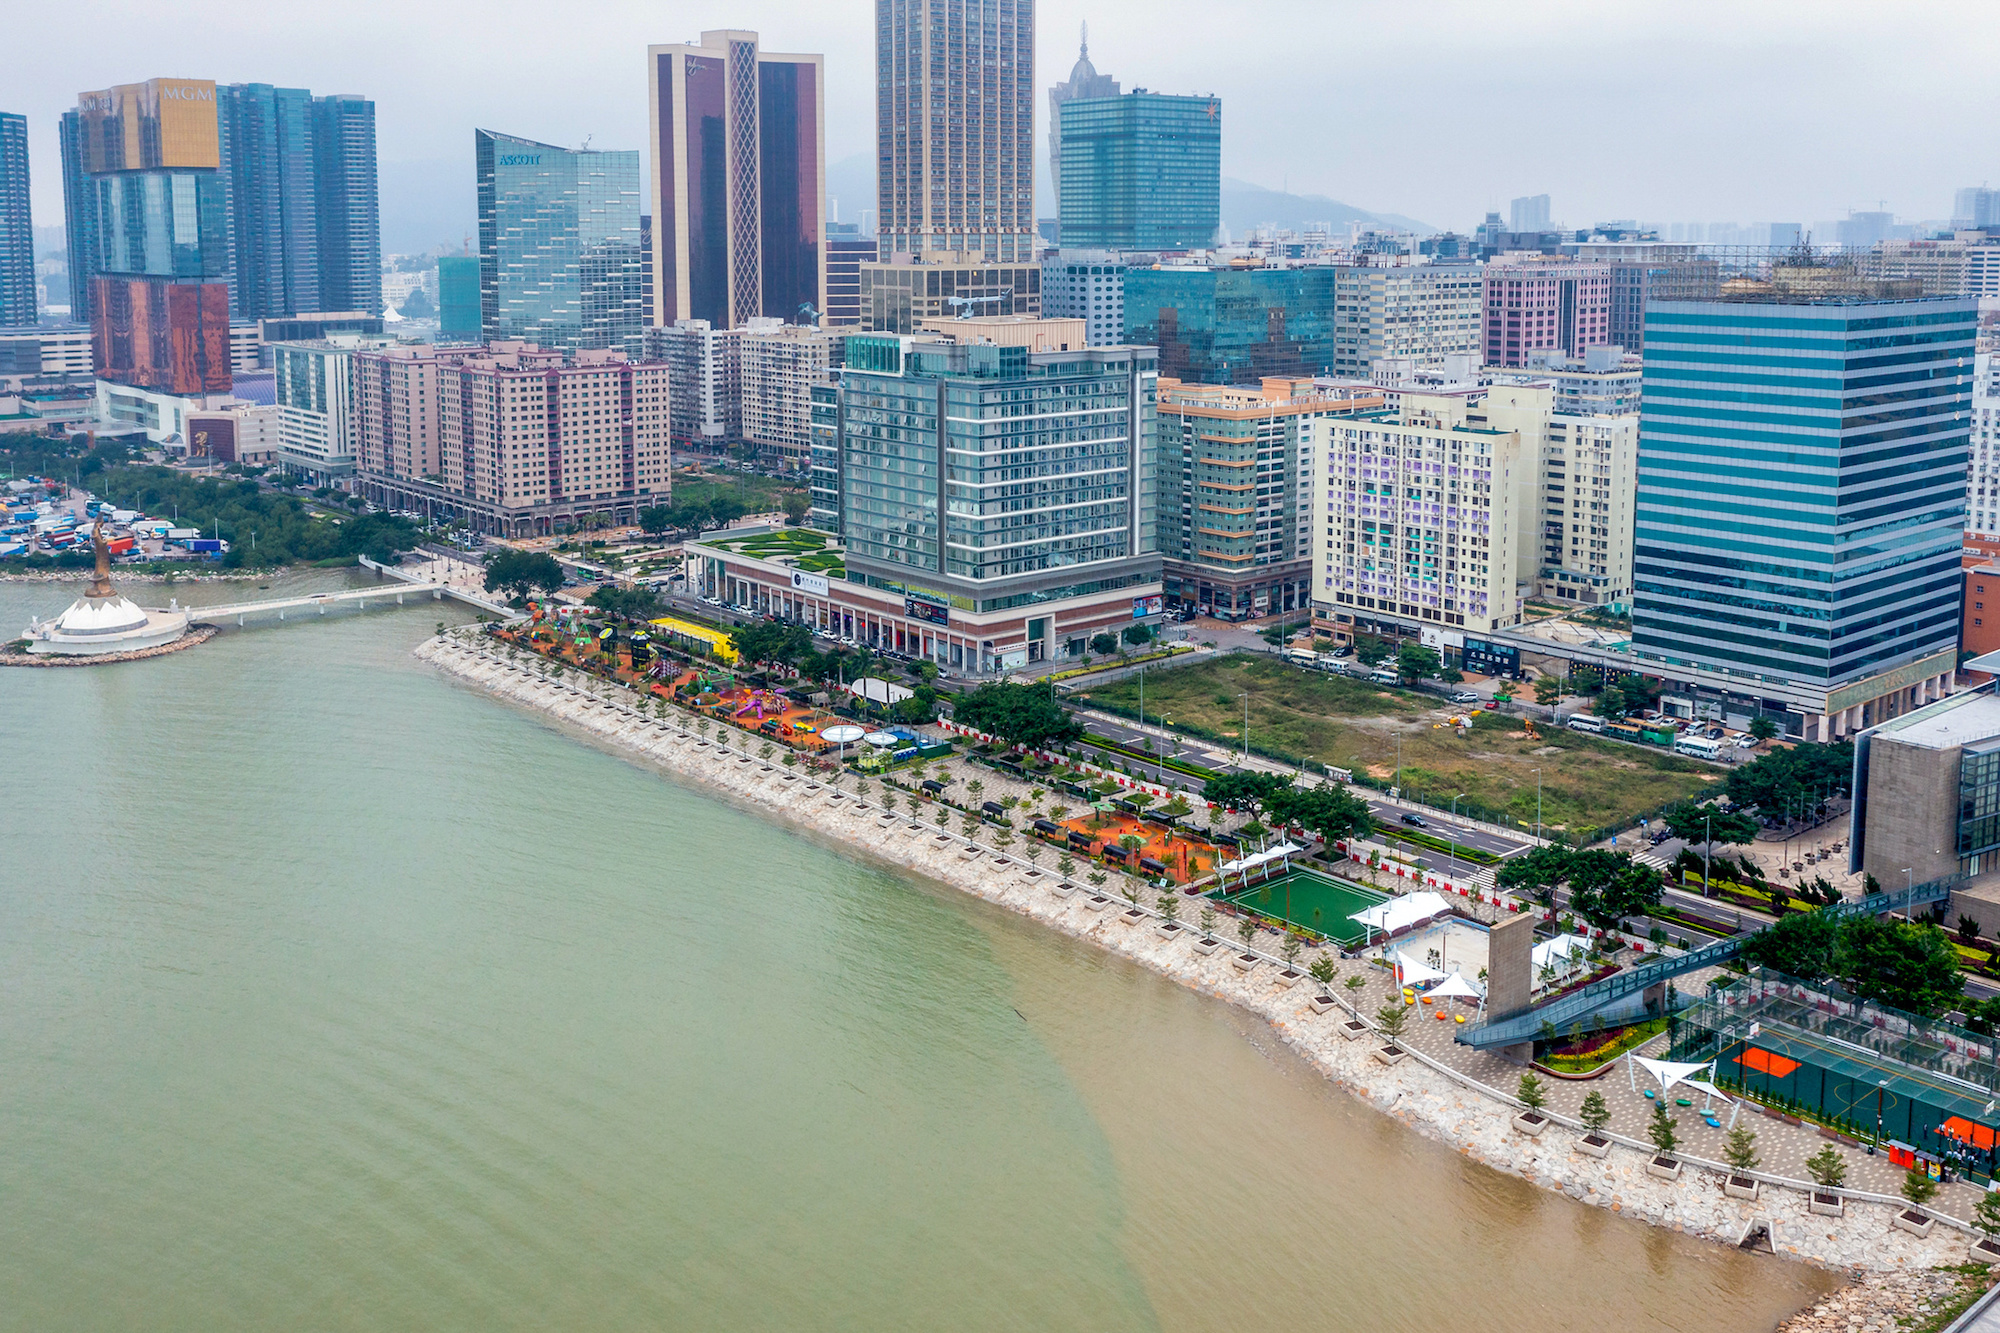 Aerial views of the waterfront park